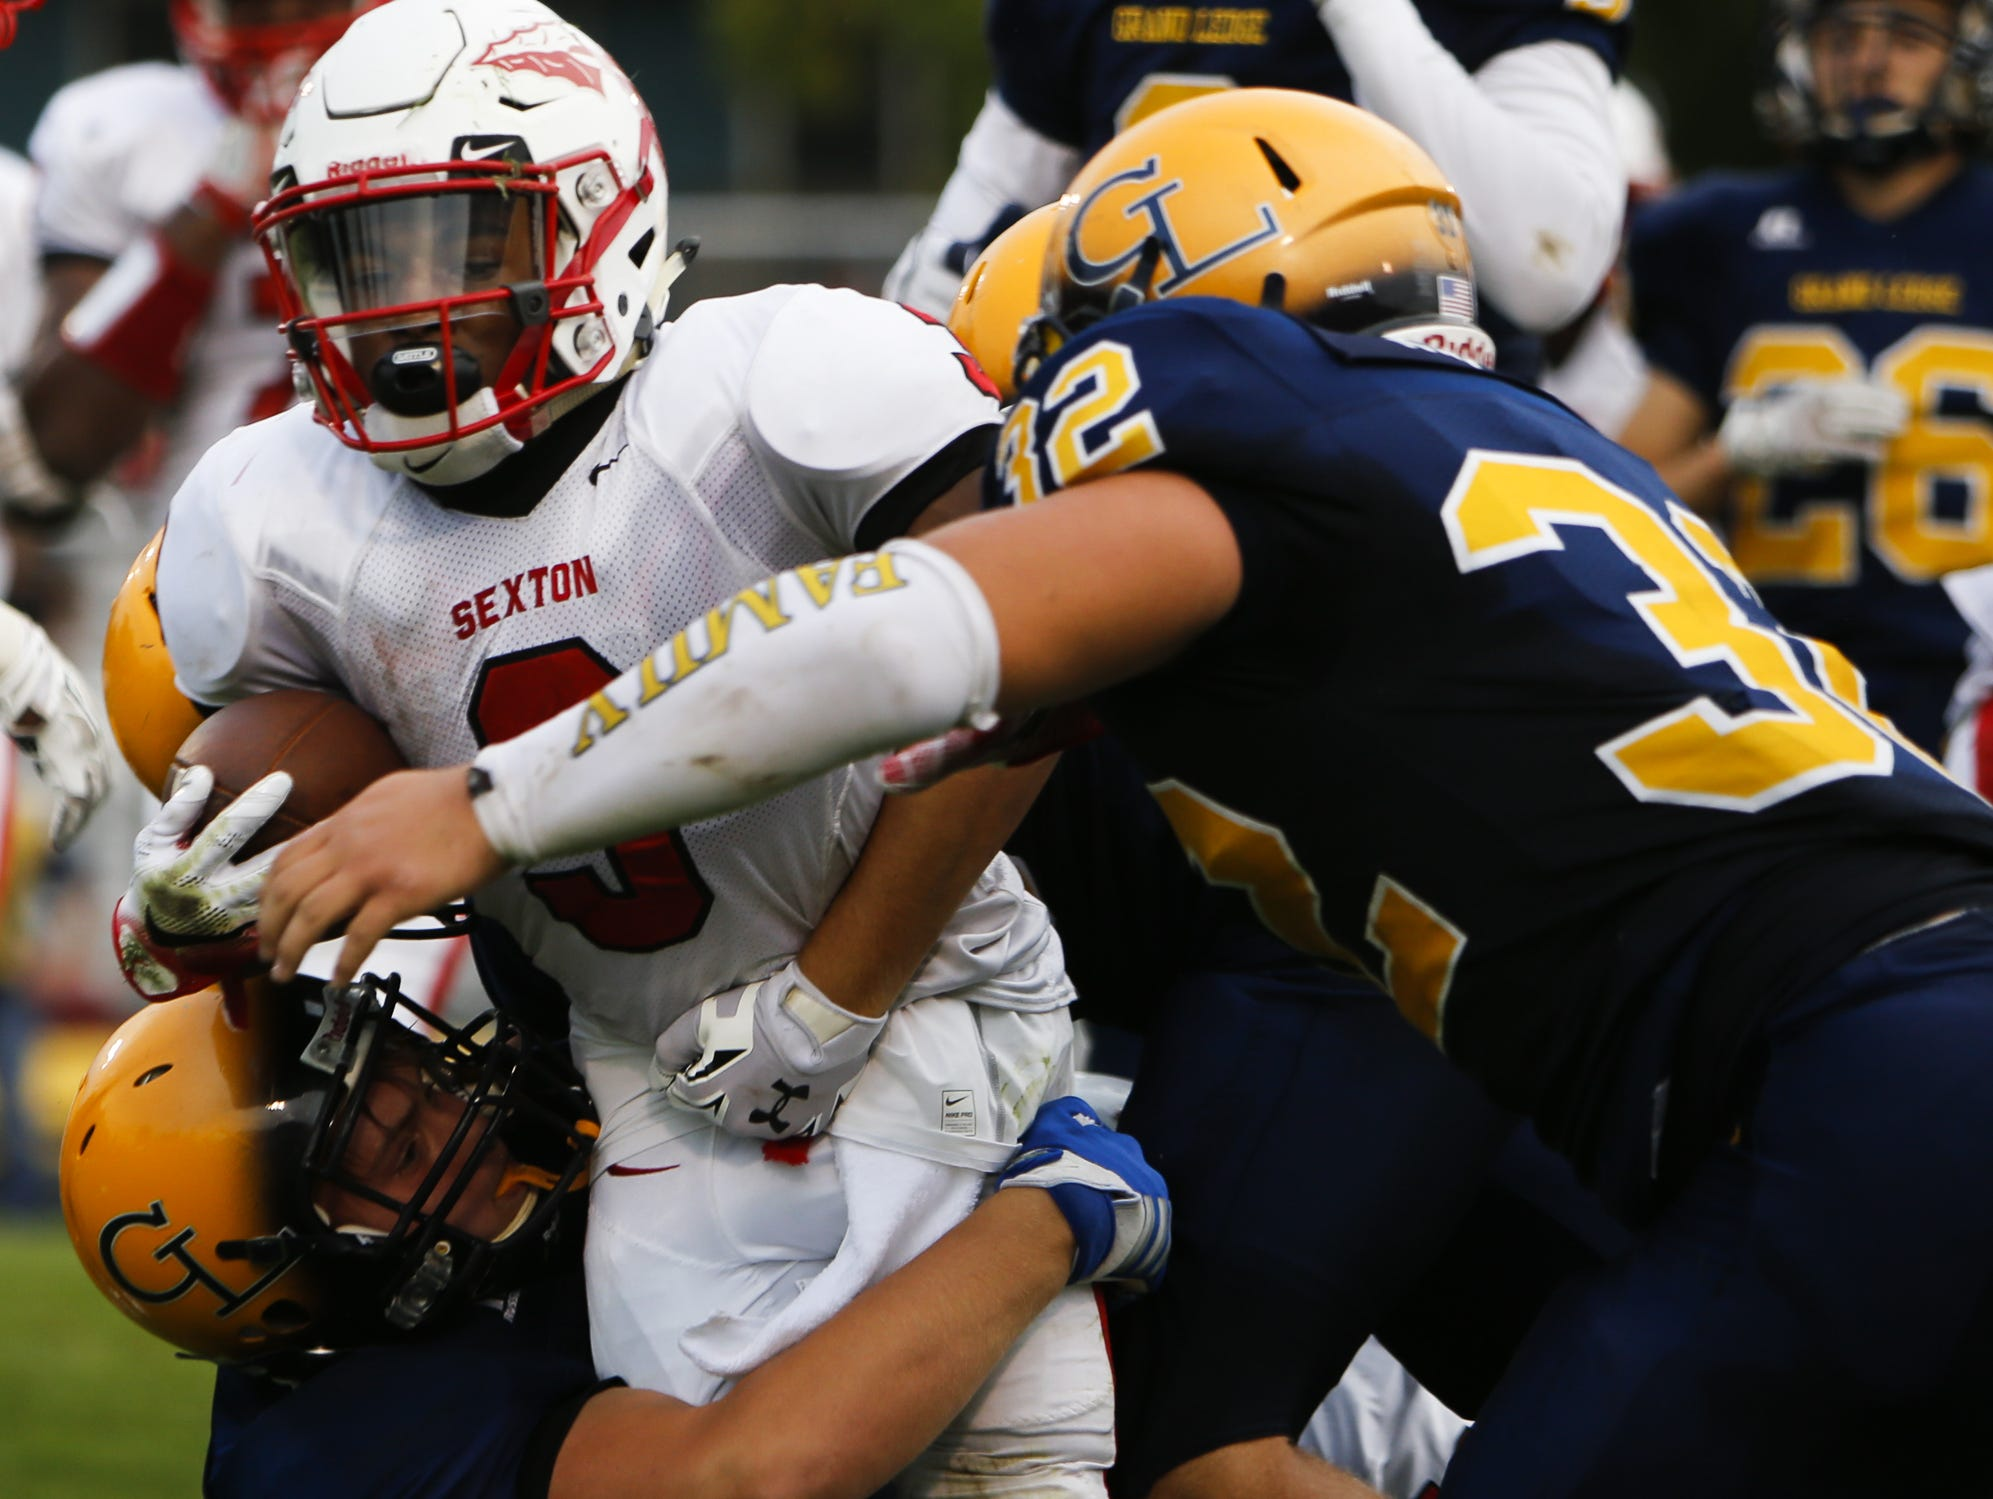 Cody Blankenburg, shown carrying the ball against Grand Ledge last week, is evolving into a playmaker for Sexton. The junior had four touchdowns in the Big Reds' 41-28 win over Jackson on Friday, which included returning an interception for a score.